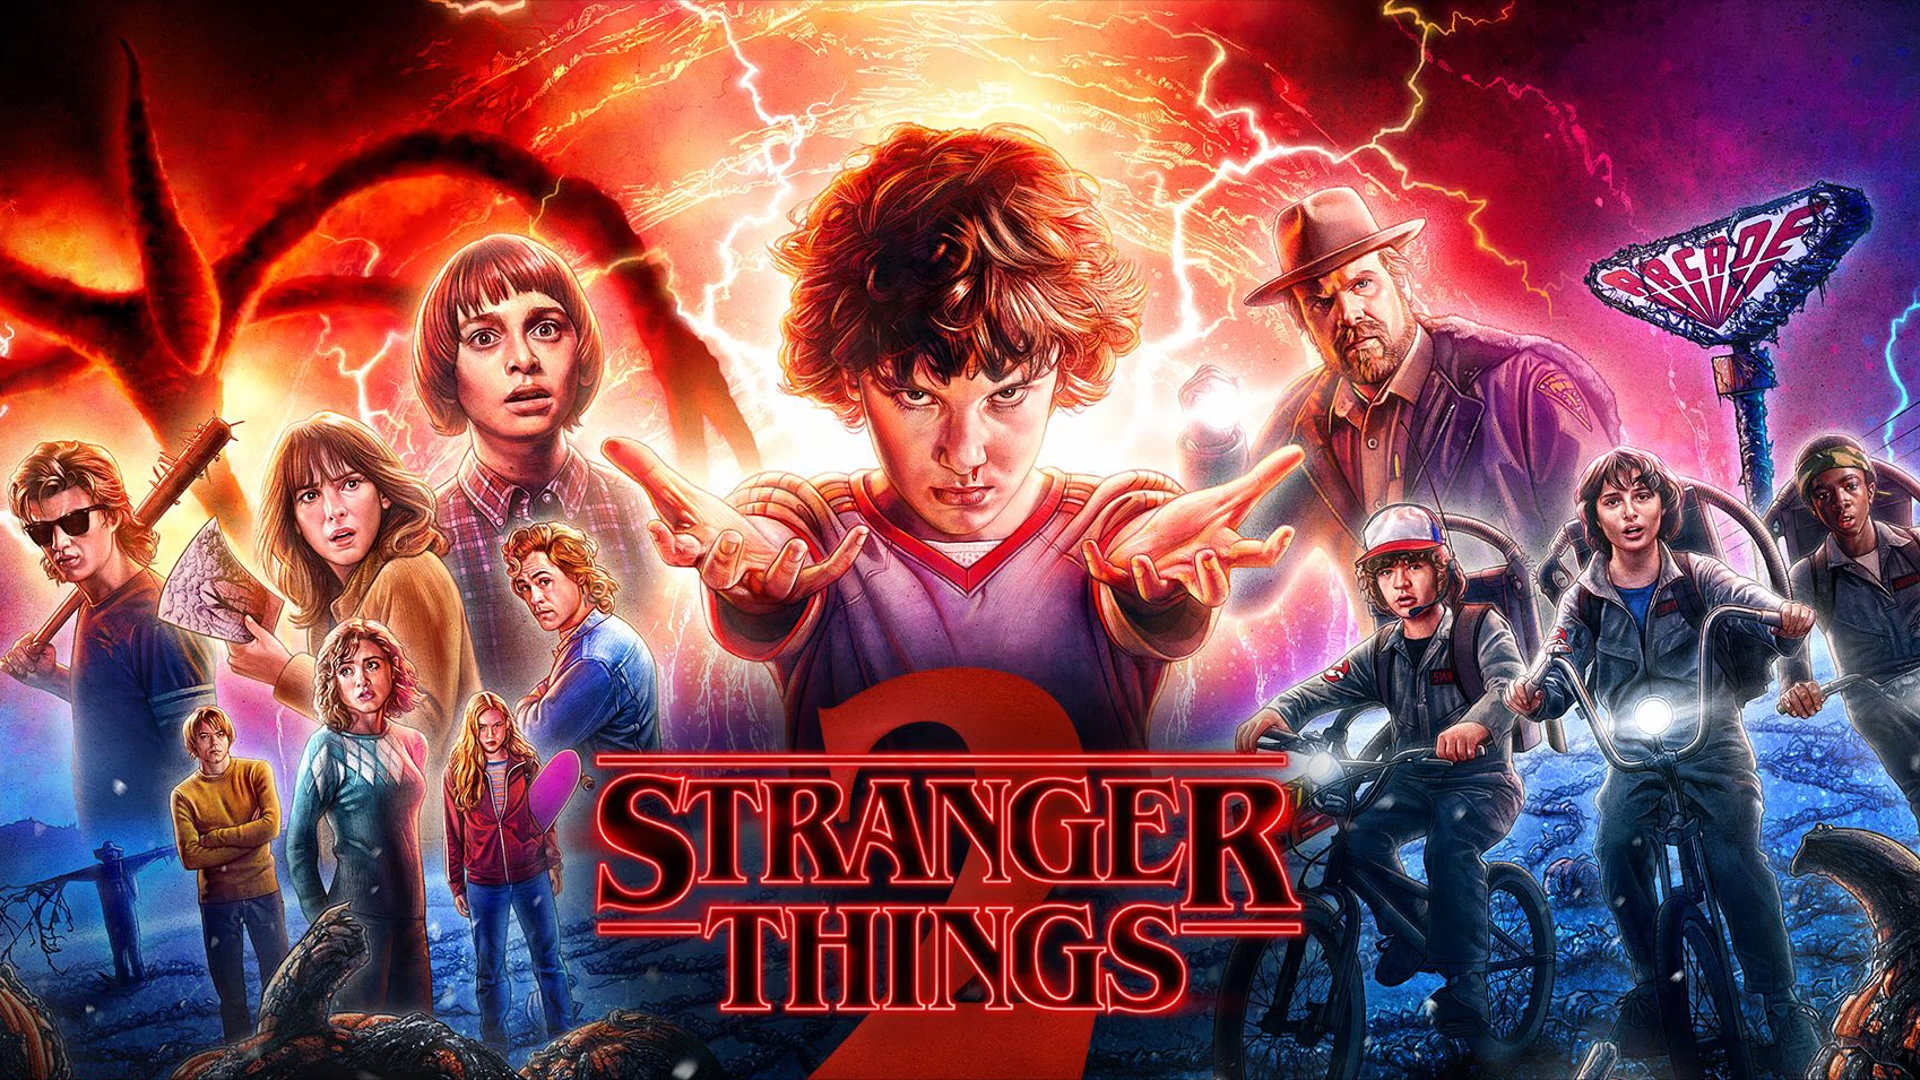 Stranger Things Season 2 2017 Latest Hd Tv Shows 4k Wallpapers